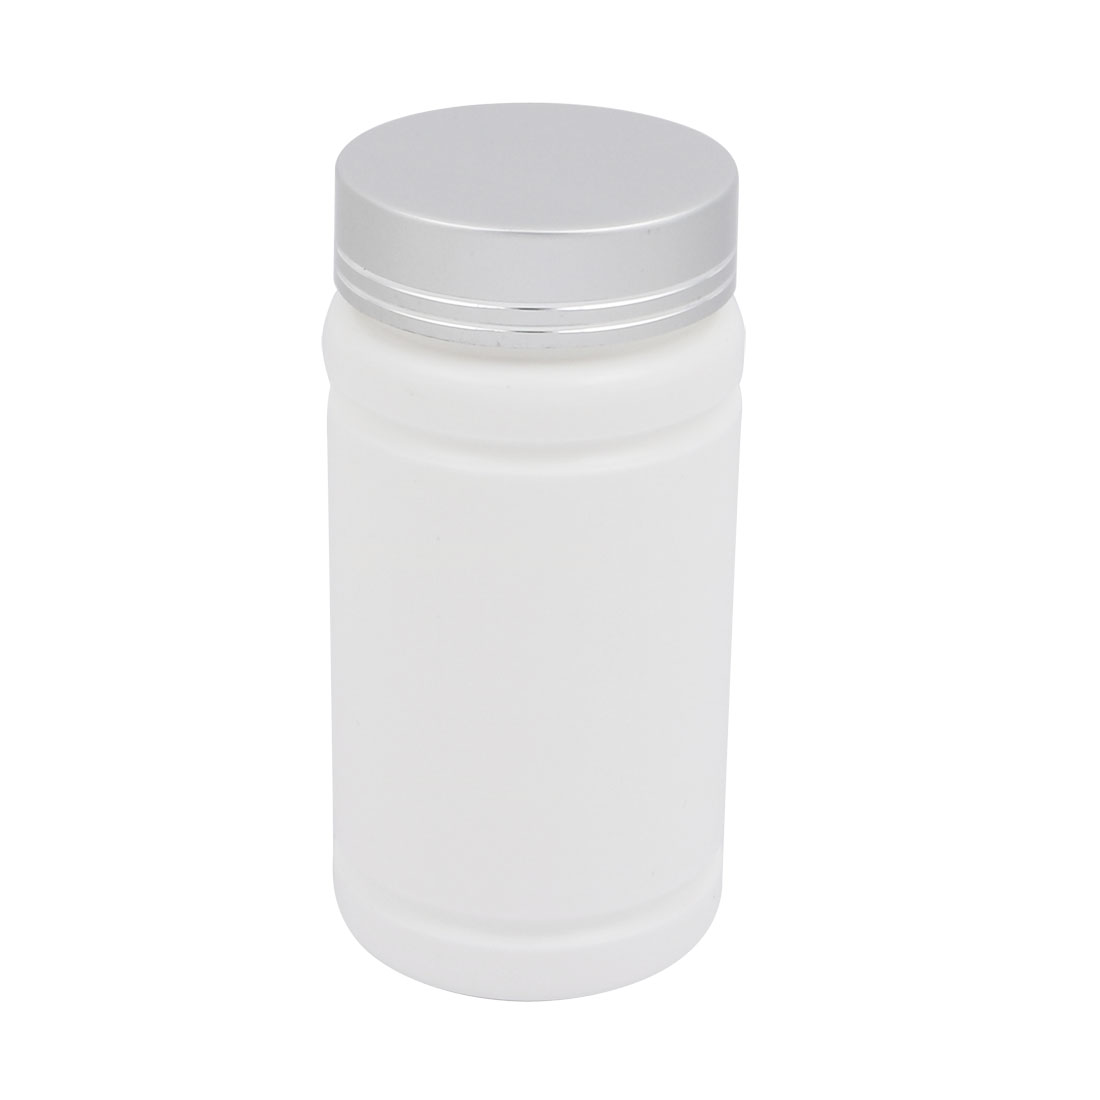 5oz HDPE Plastic White Refillable Narrow Mouth Storage Bottle Jar